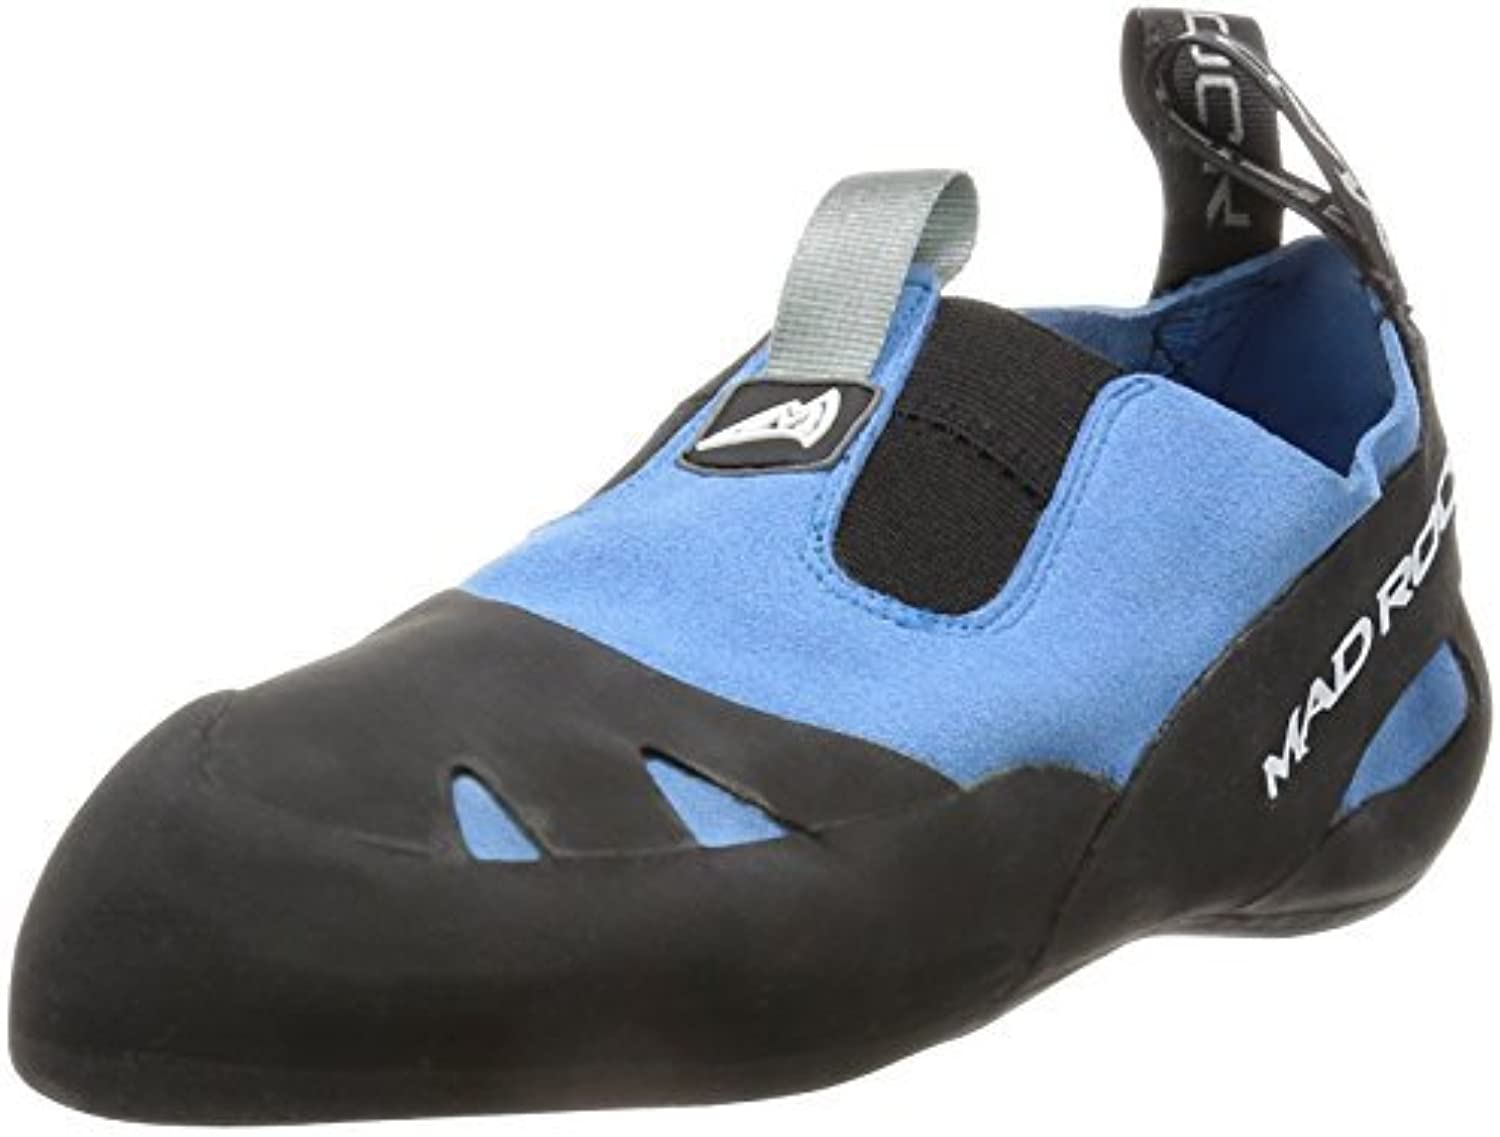 Mad Rock Mens Remora Climbing shoes, Black bluee, 10 M US by Mad Rock